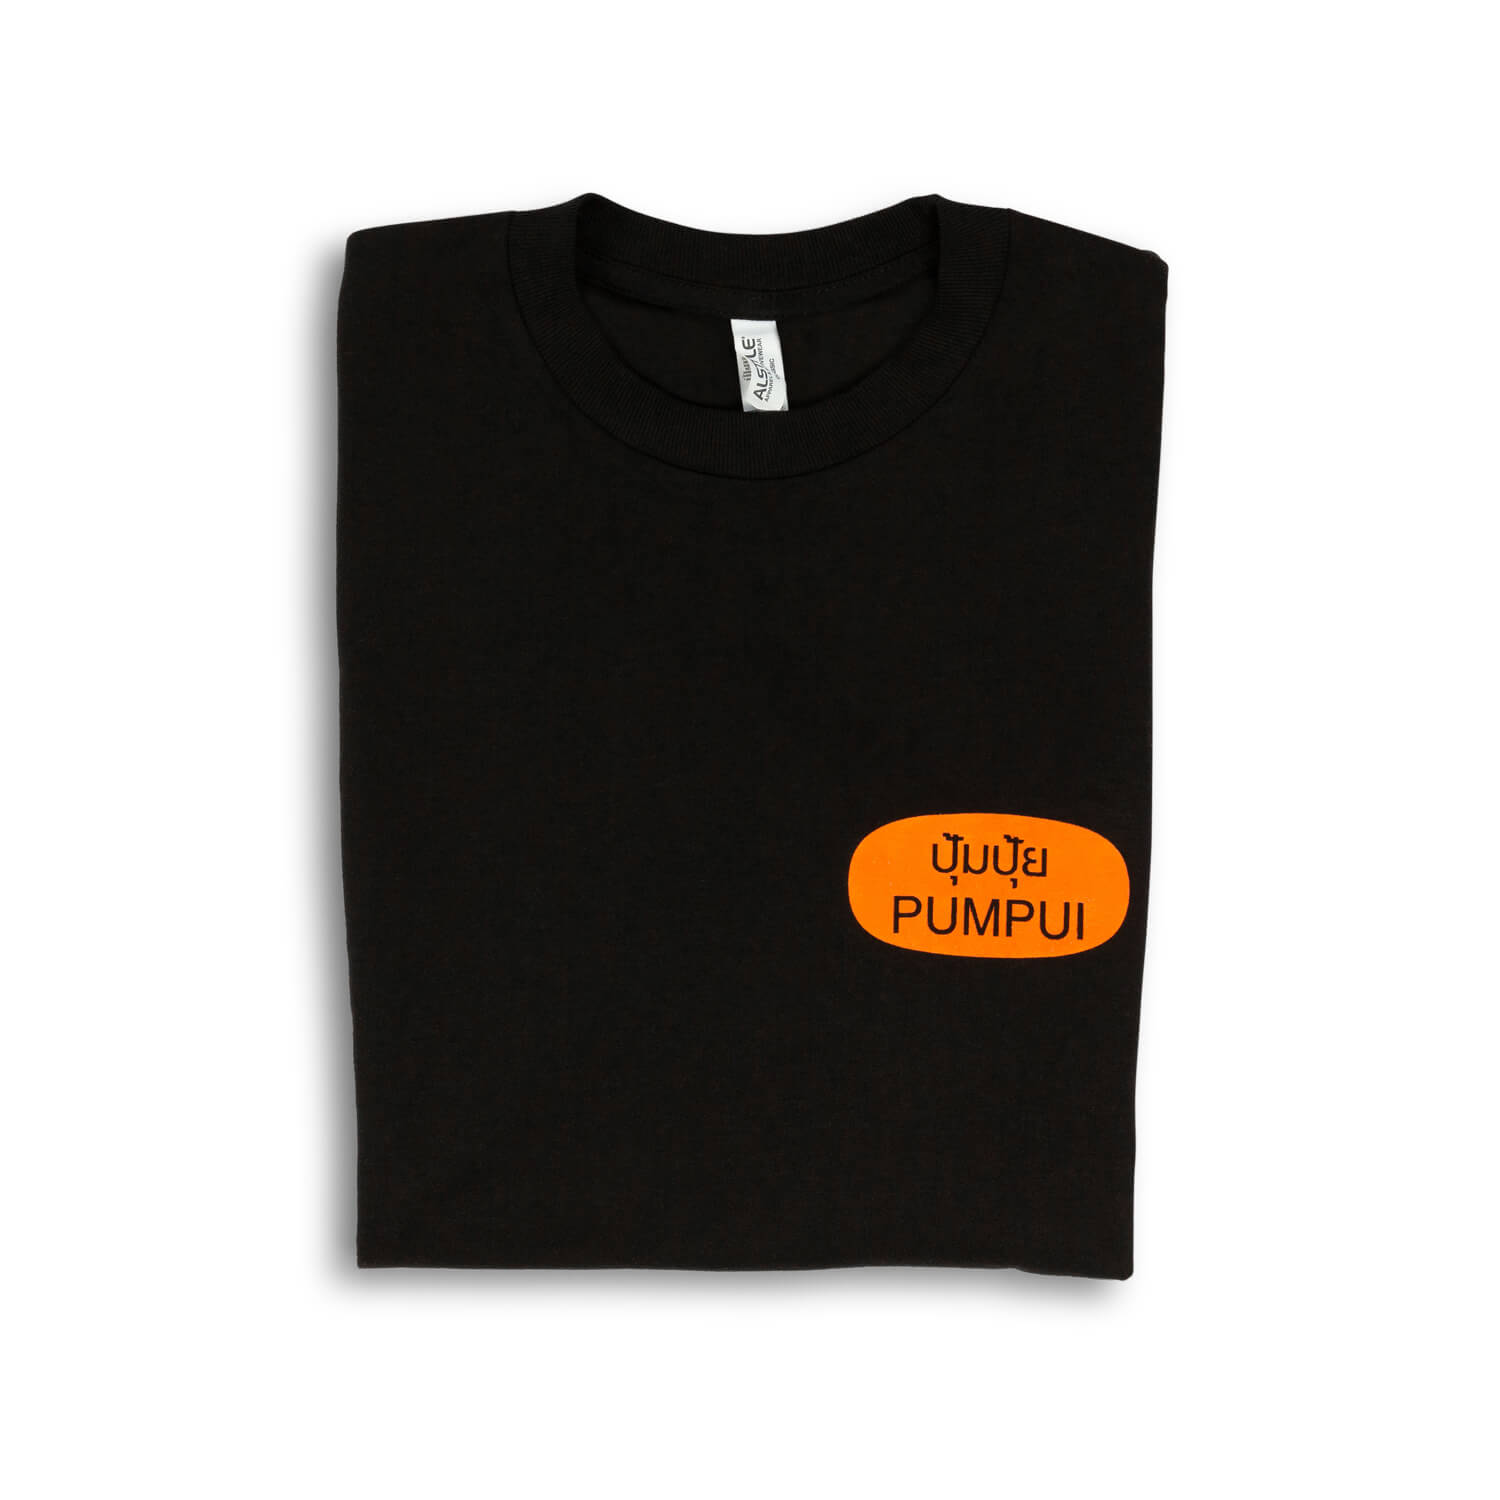 Pumpui T-Shirt (Black)